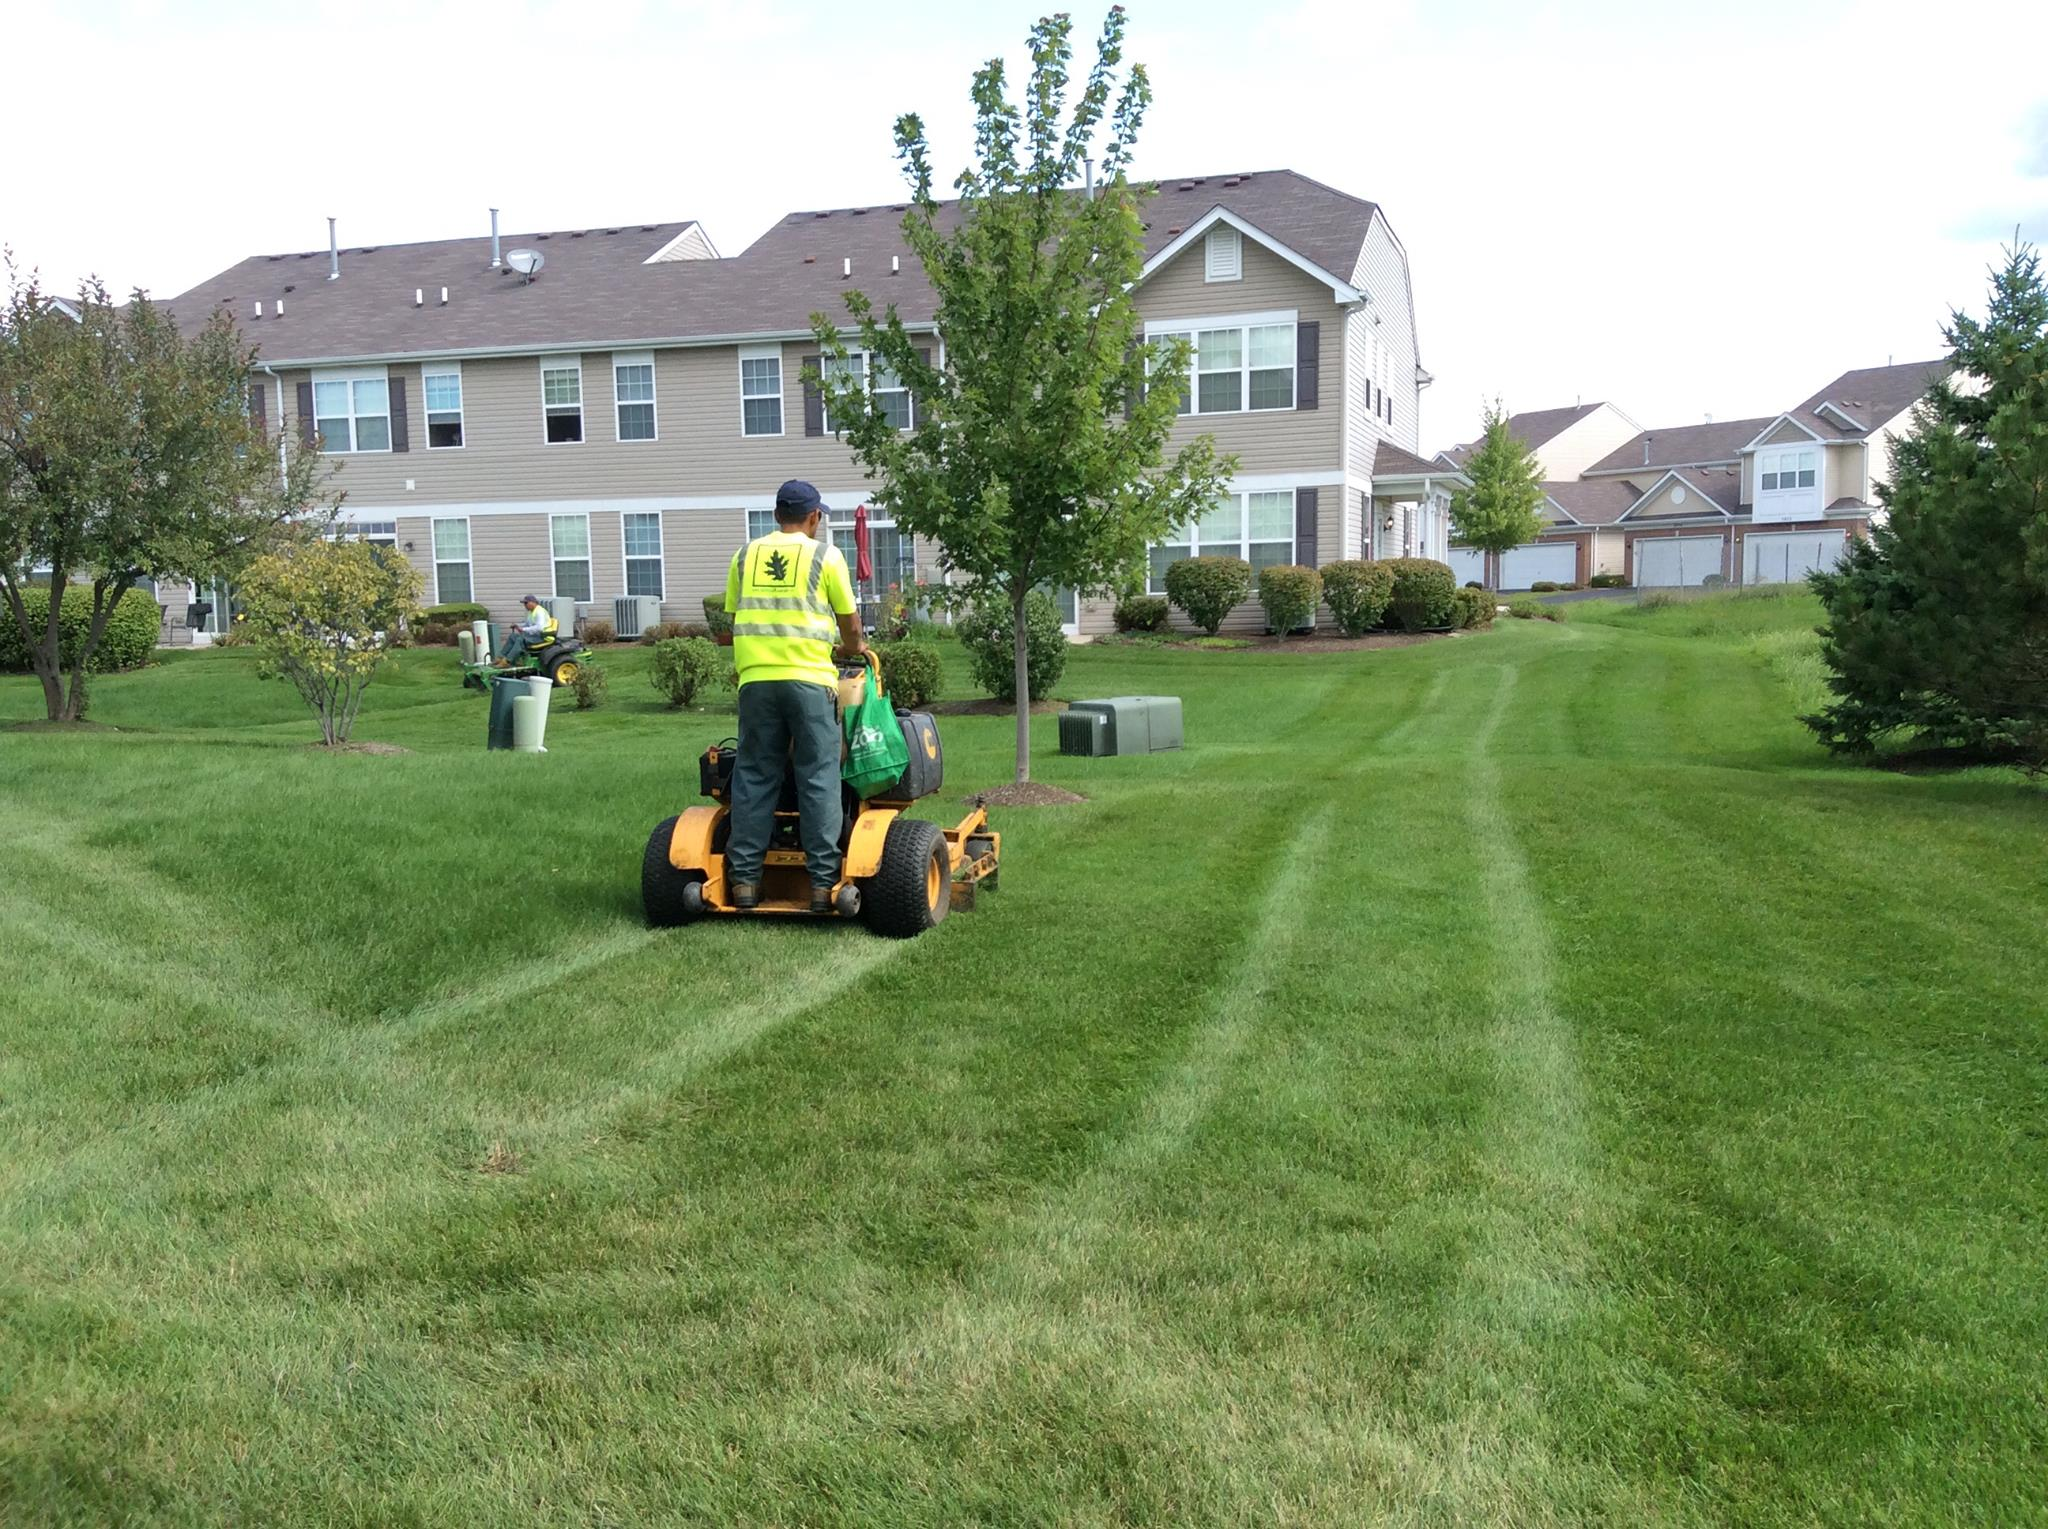 Commercial landscaping includes maintenance, sod installation and commercial snow removal in Hinsdale, IL